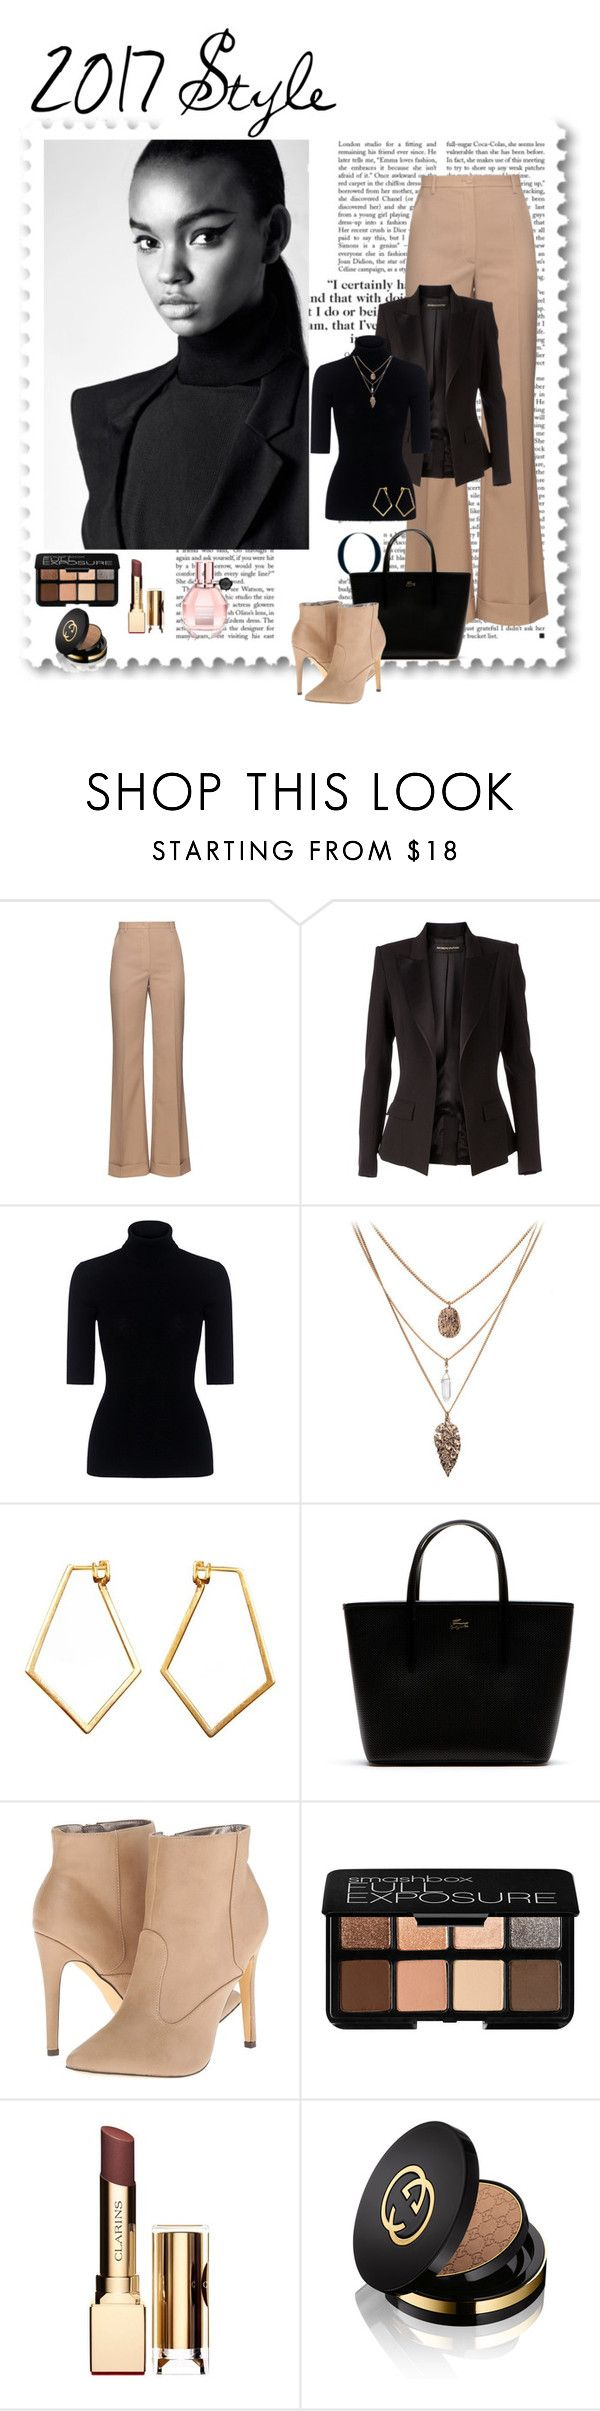 """2017 Style"" by ljano ❤ liked on Polyvore featuring Nina Ricci, Alexandre Vauthier, Marissa Webb, Dutch Basics, Lacoste, Michael Antonio, Smashbox, Clarins, Gucci and Viktor & Rolf"